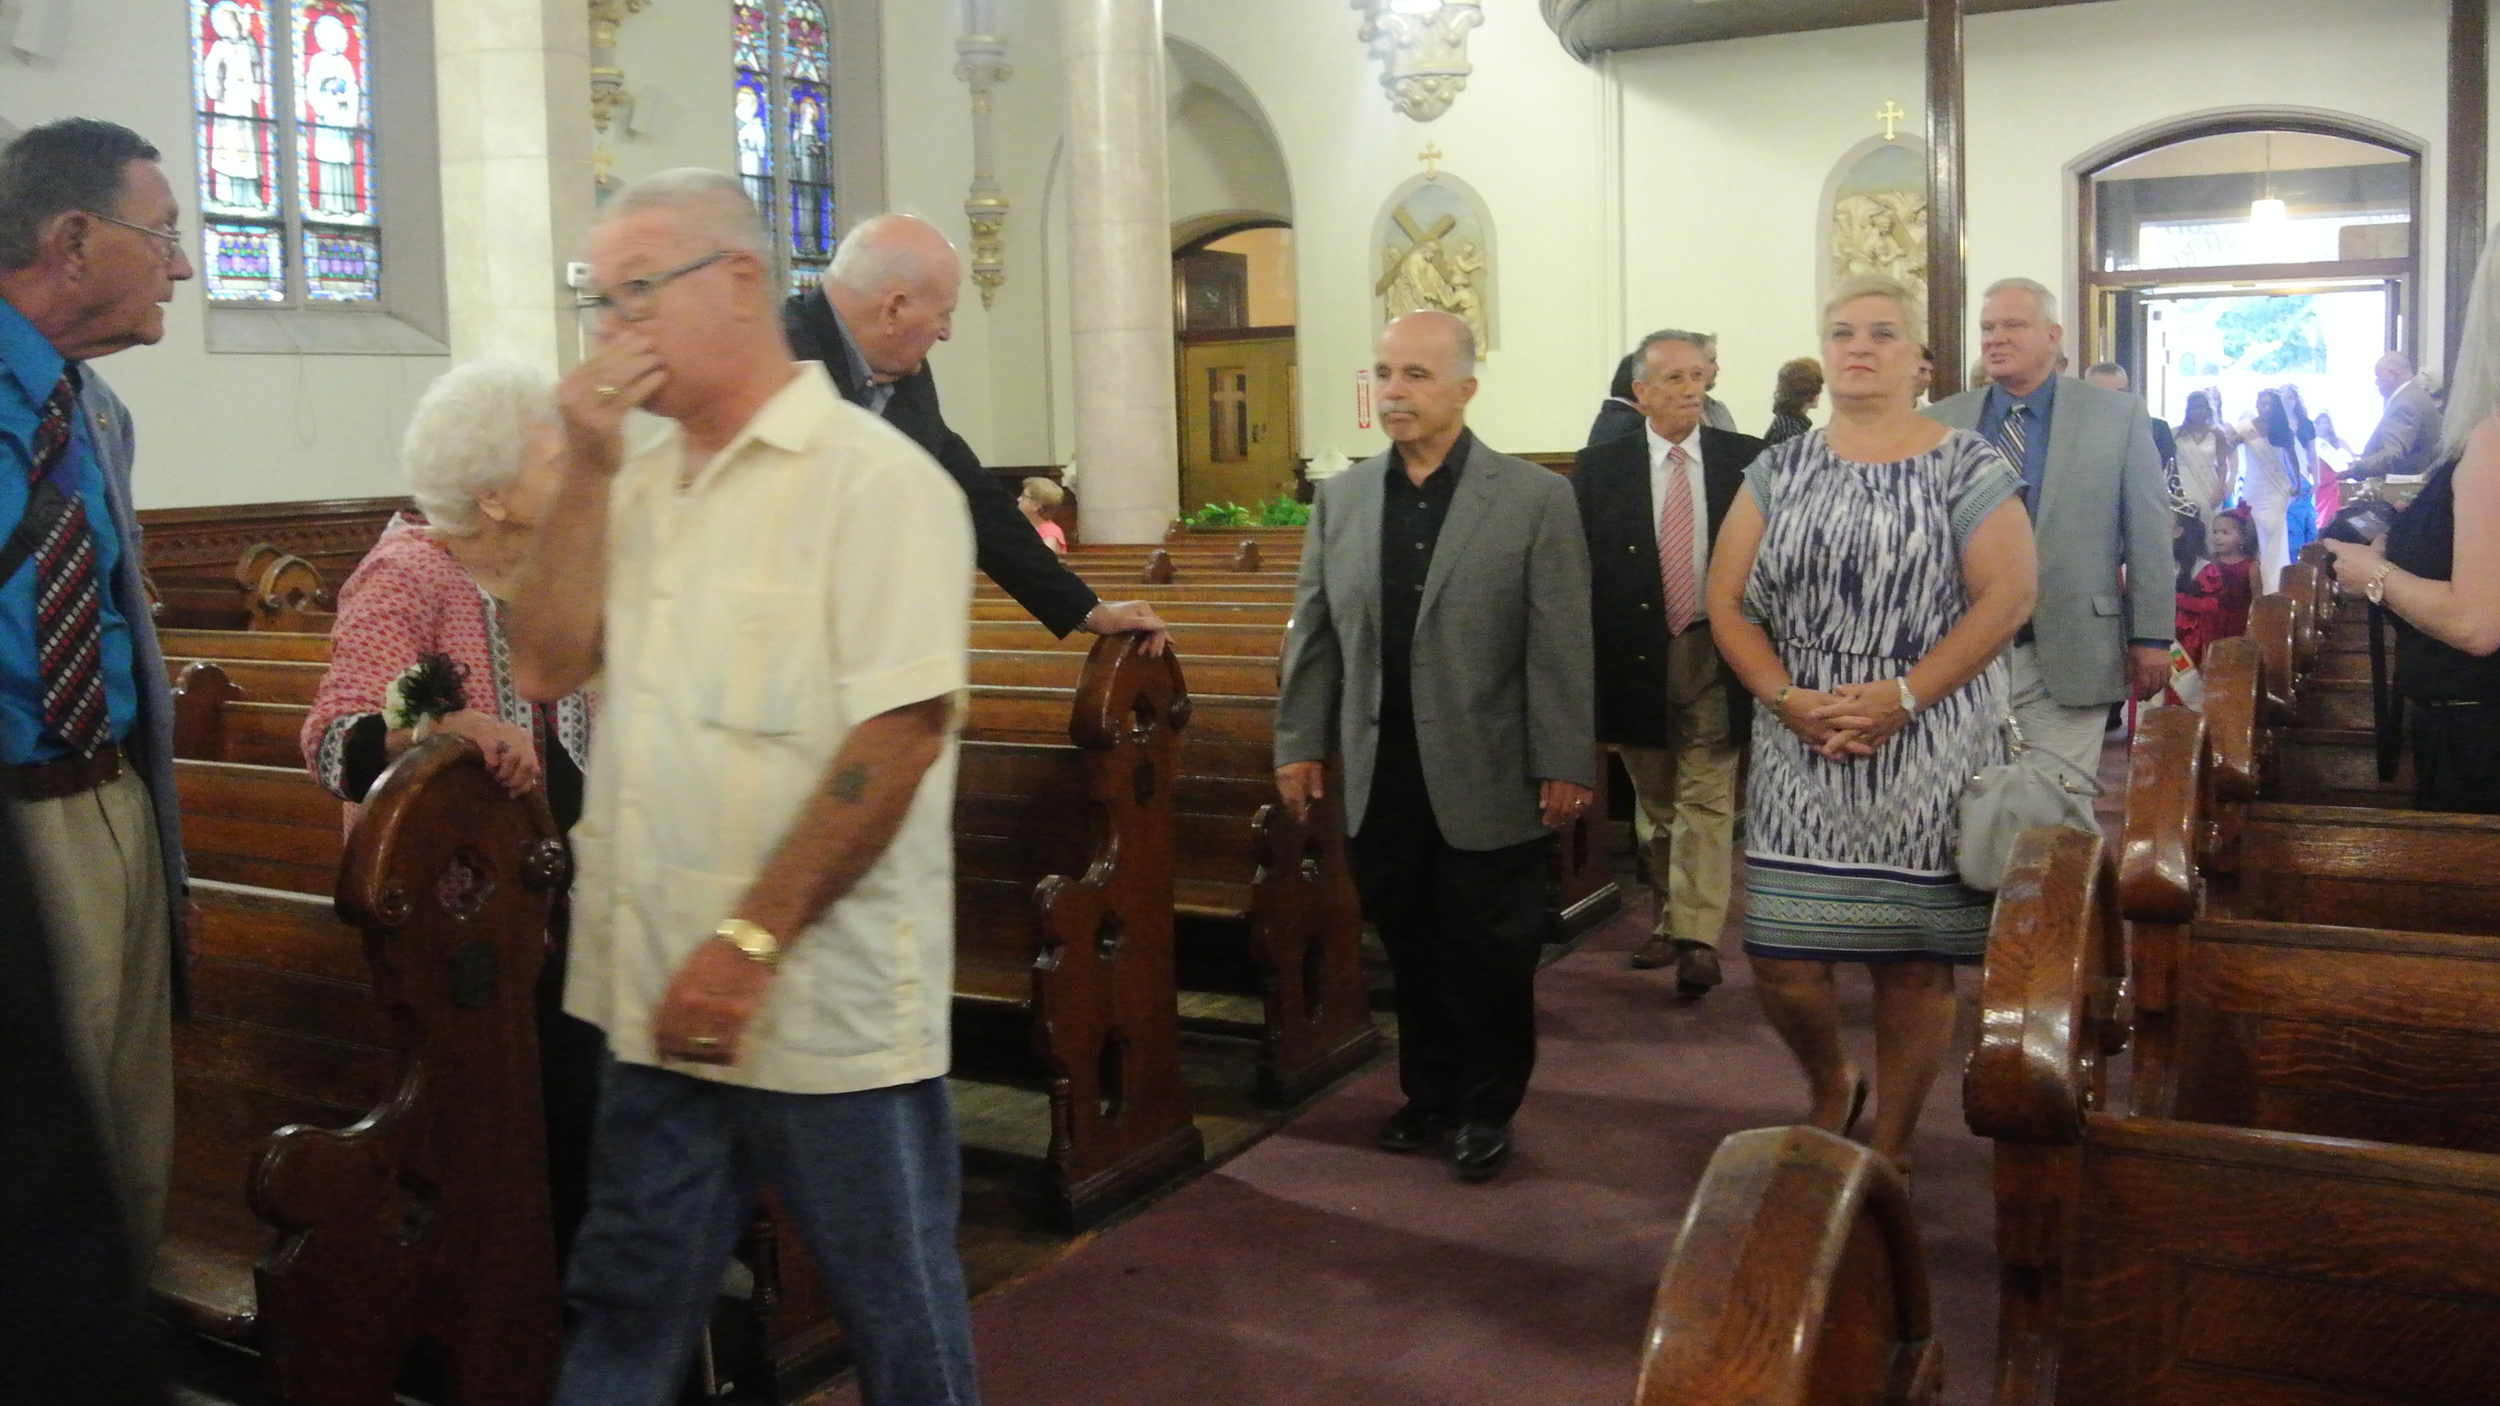 Councilman Michael Dolaghan, Laurence Bennett, Francisco Nascimento, James Doran and Councilwoman Carol Mandaglio at Holy Cross Church in Harrison